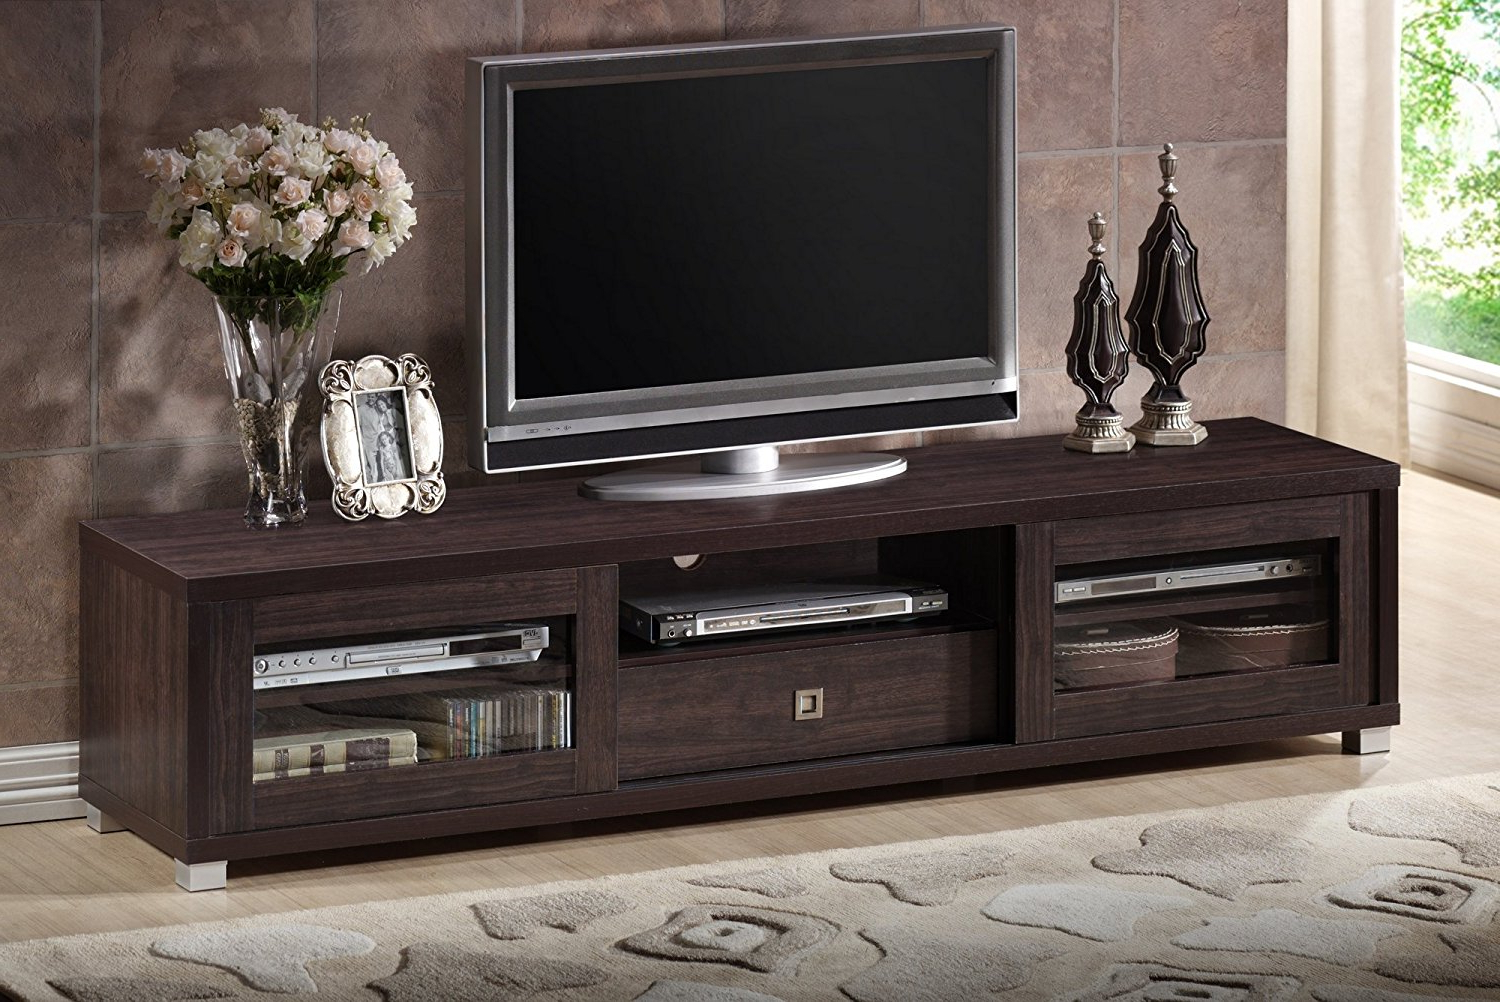 Coolest Dark Wood Tv Stand Amazon: Wholesale Interiors – Furnish With Regard To Most Recent Dark Wood Tv Stands (Gallery 10 of 20)